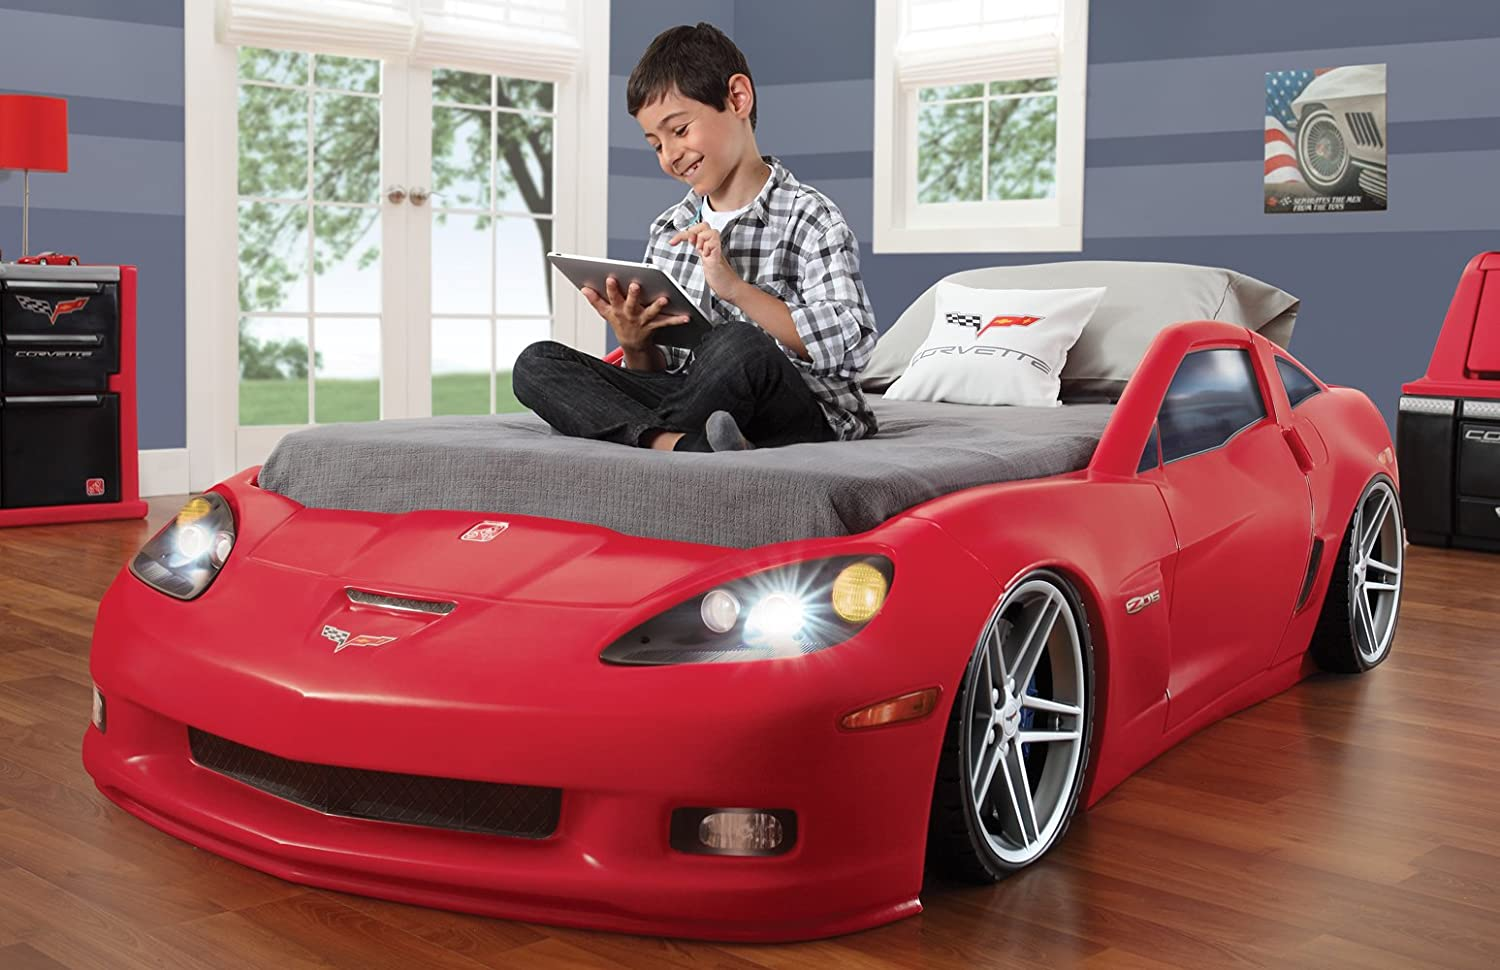 Buy Step2 Corvette Bed Toddler To Twin With Lights Online At Low Prices In India